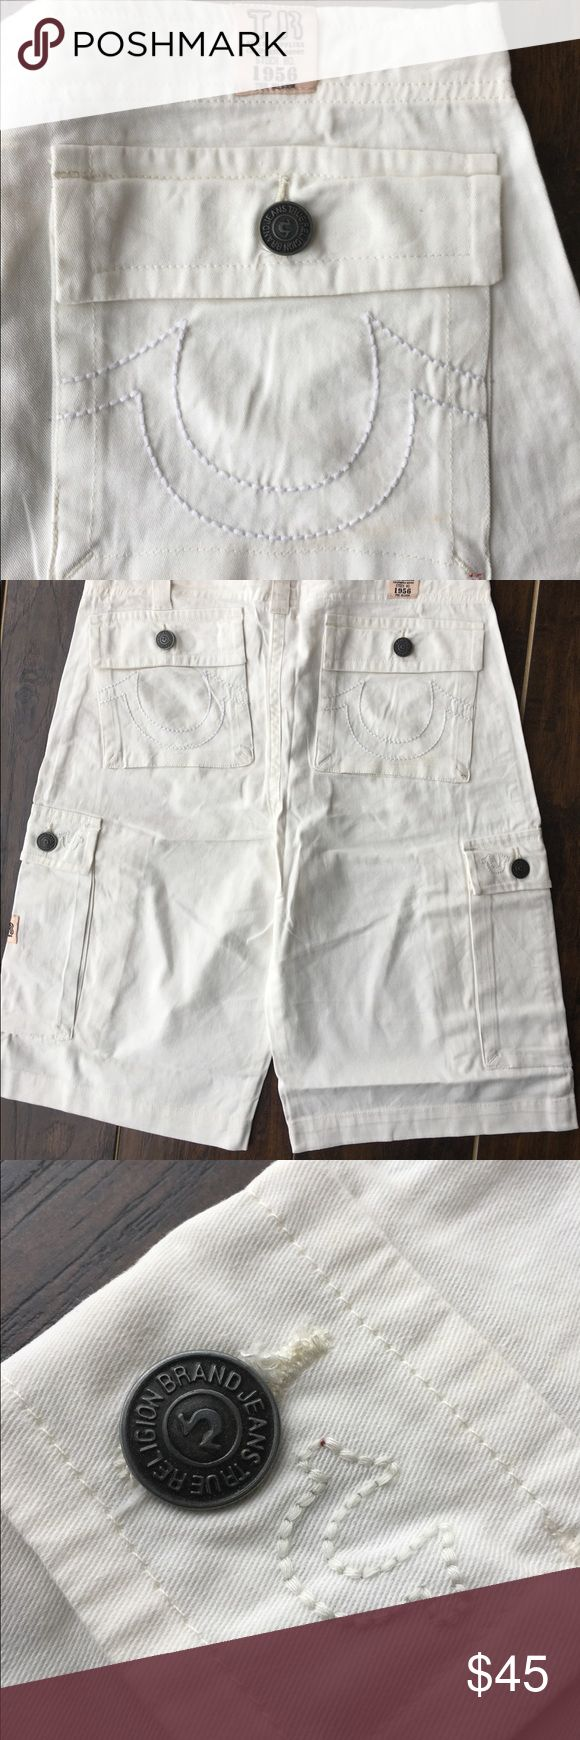 New Men's True Religion White Cargo Shorts Brand new with tags. Roomy pockets with drawstring closure. Great for summer parties. True Religion Shorts Cargo